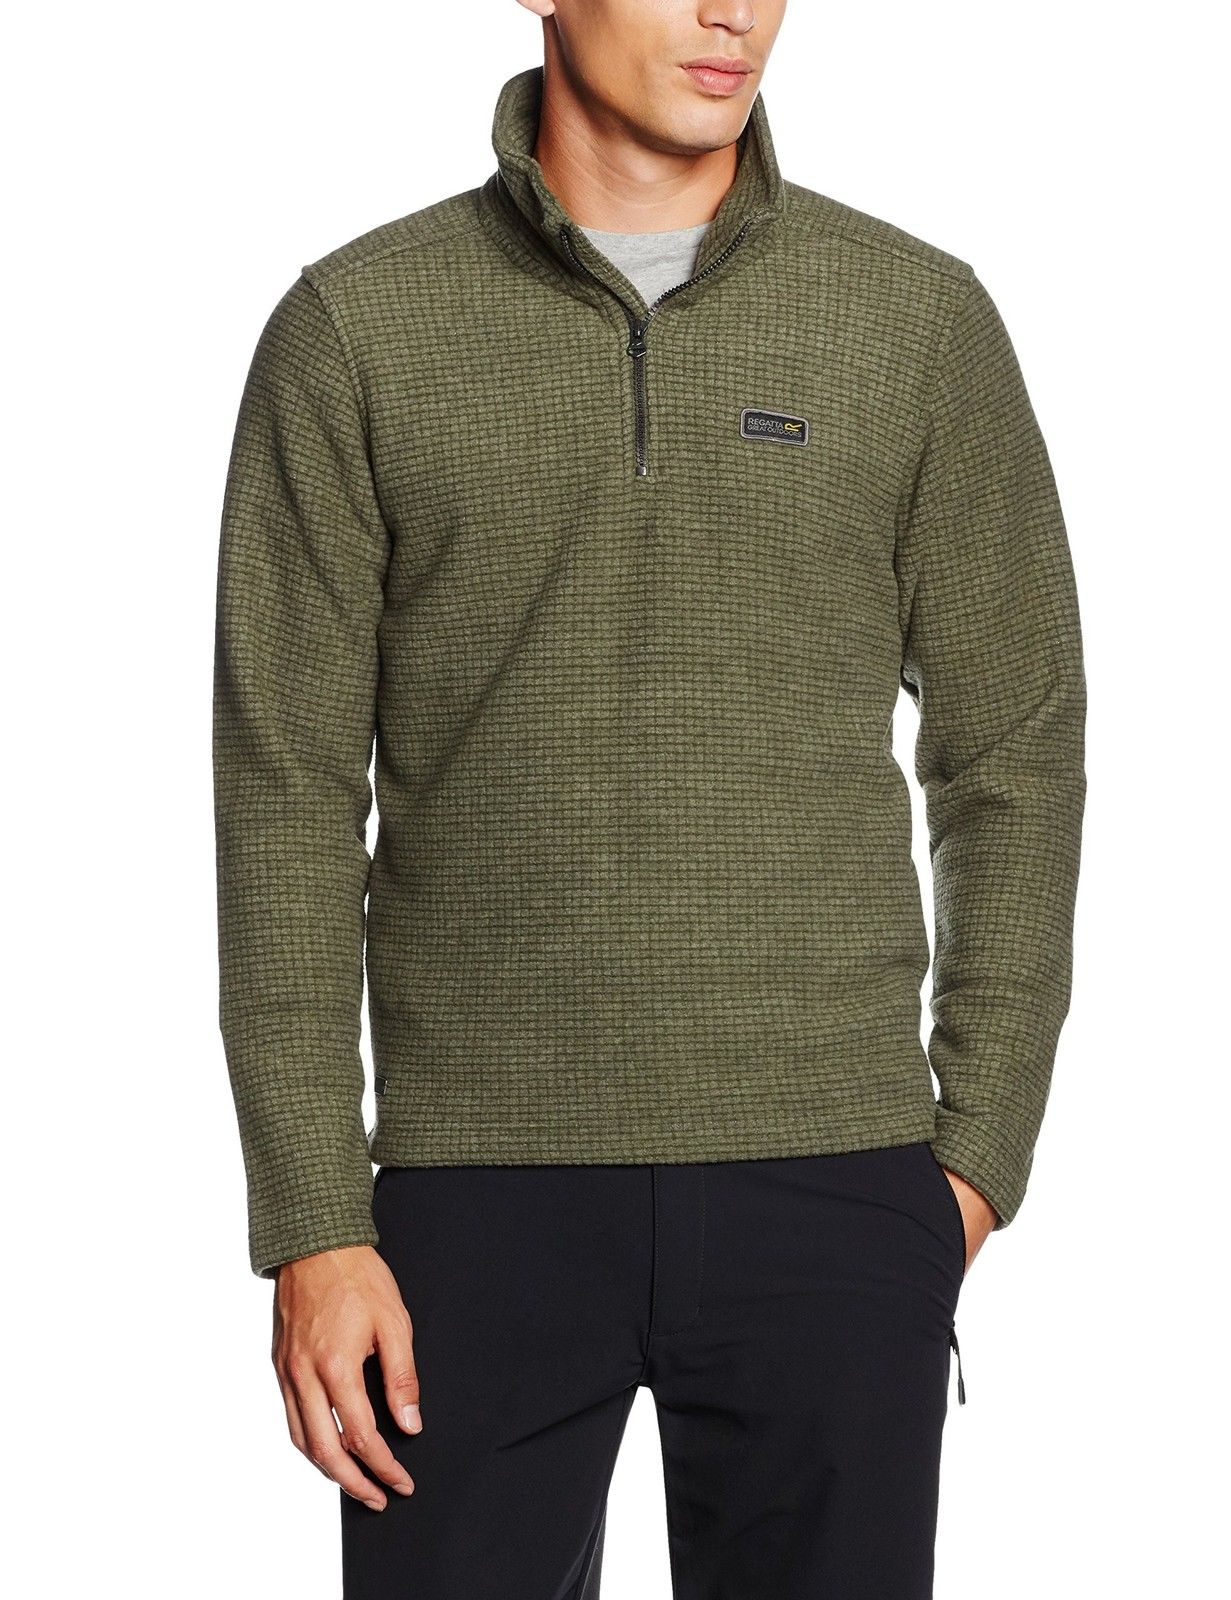 Regatta Layton Mens Warm Midweight Fleece Jacket | eBay